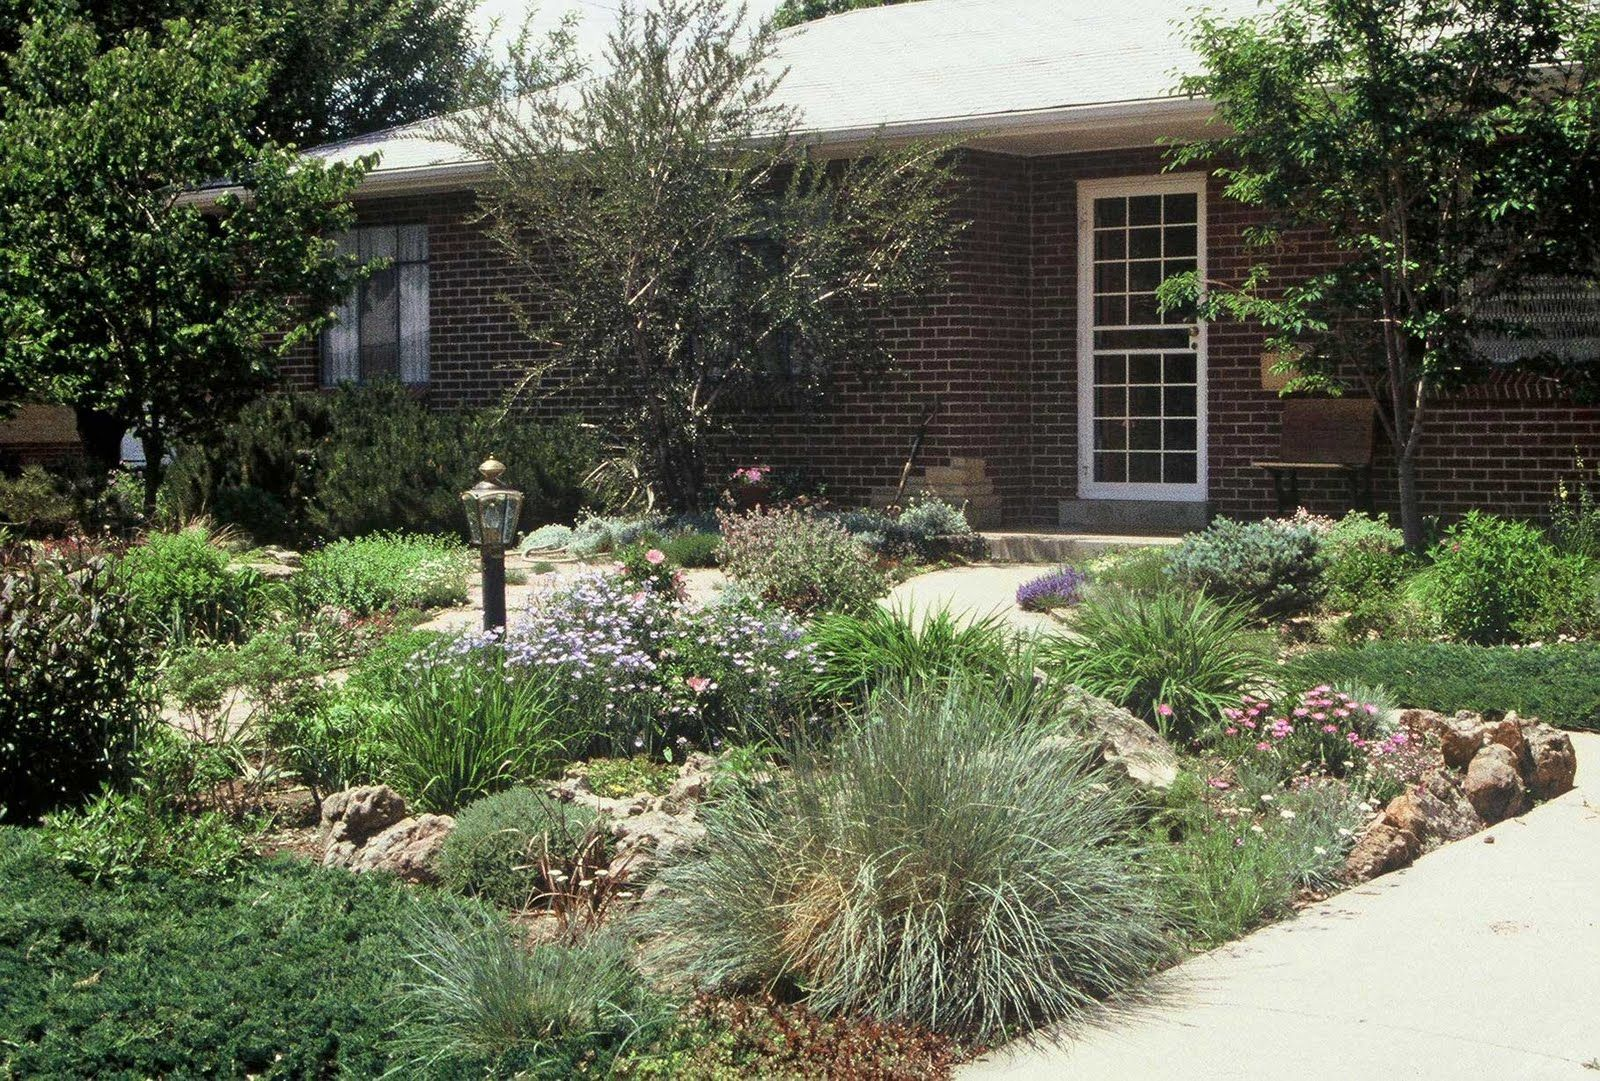 Simple landscaping ideas for front yards backyard ideas for Yard landscaping